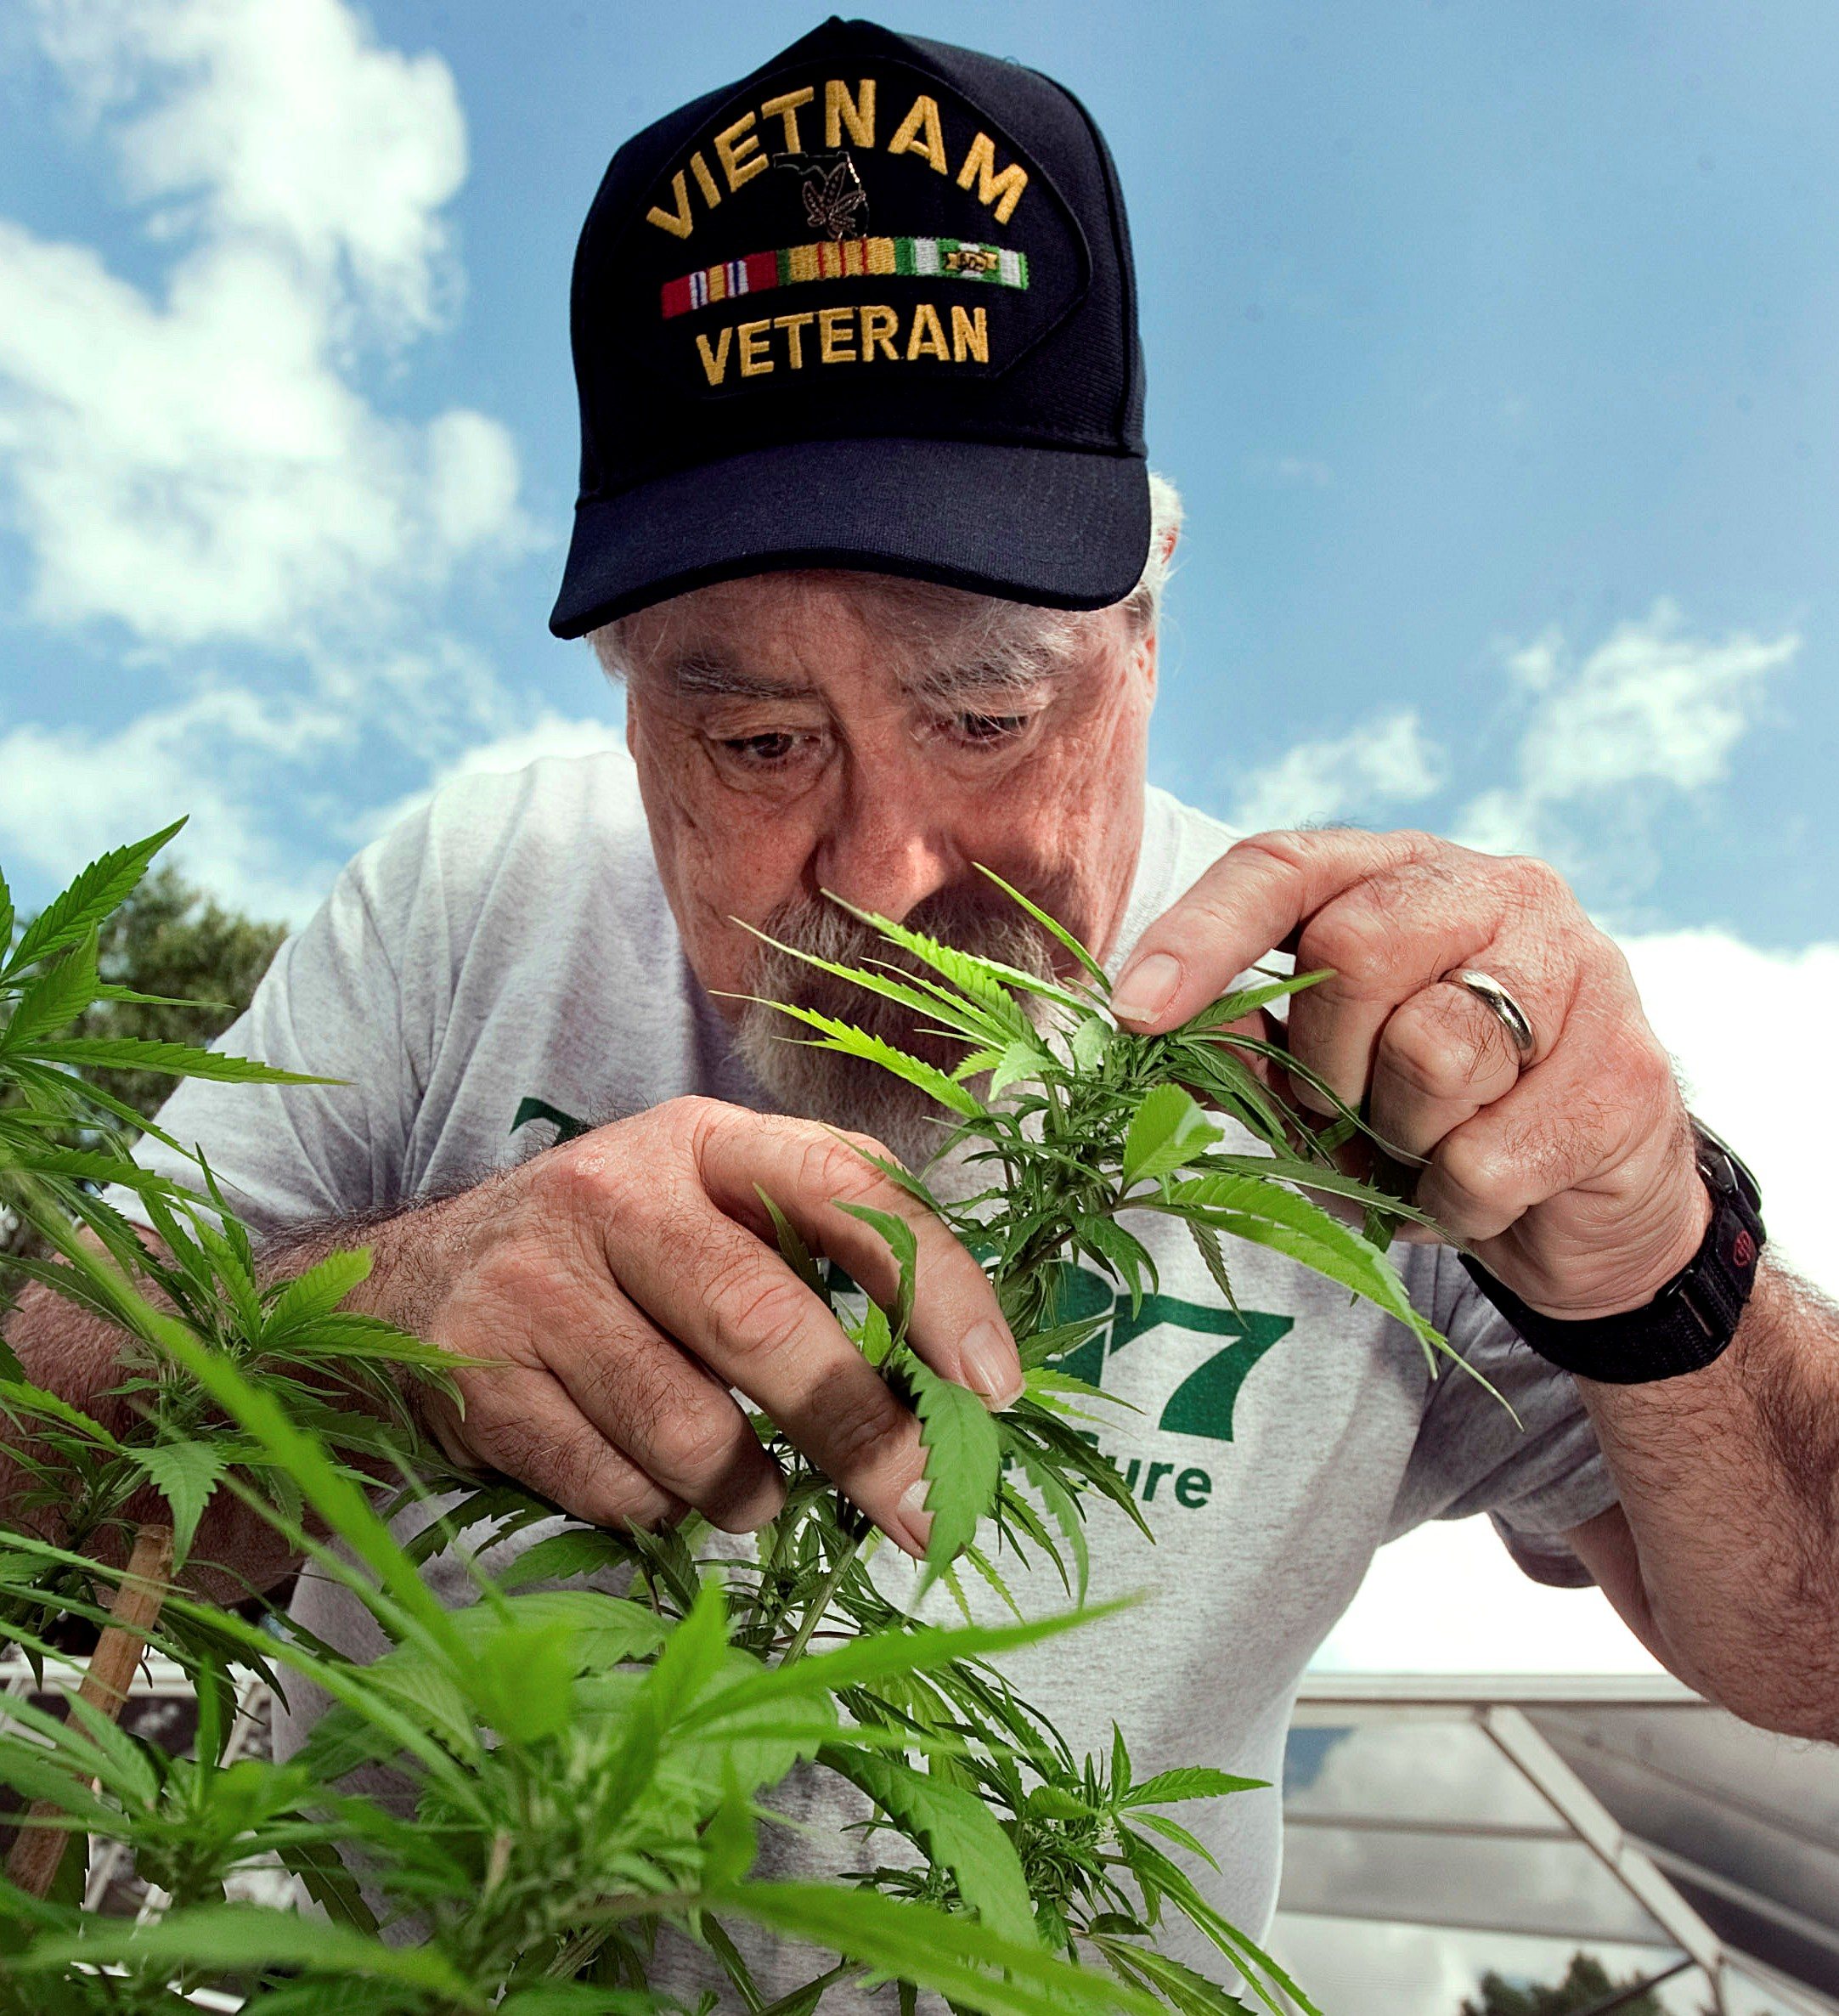 Robert Jordan, 65, of Parrish, Fla., grows a small amount of medical marijuana for his wife, Cathy Jordan, 63, who was diagnosed with 27 years ago with ALS, also known as Lou Gehrig's disease. CHERIE DIEZ | Times